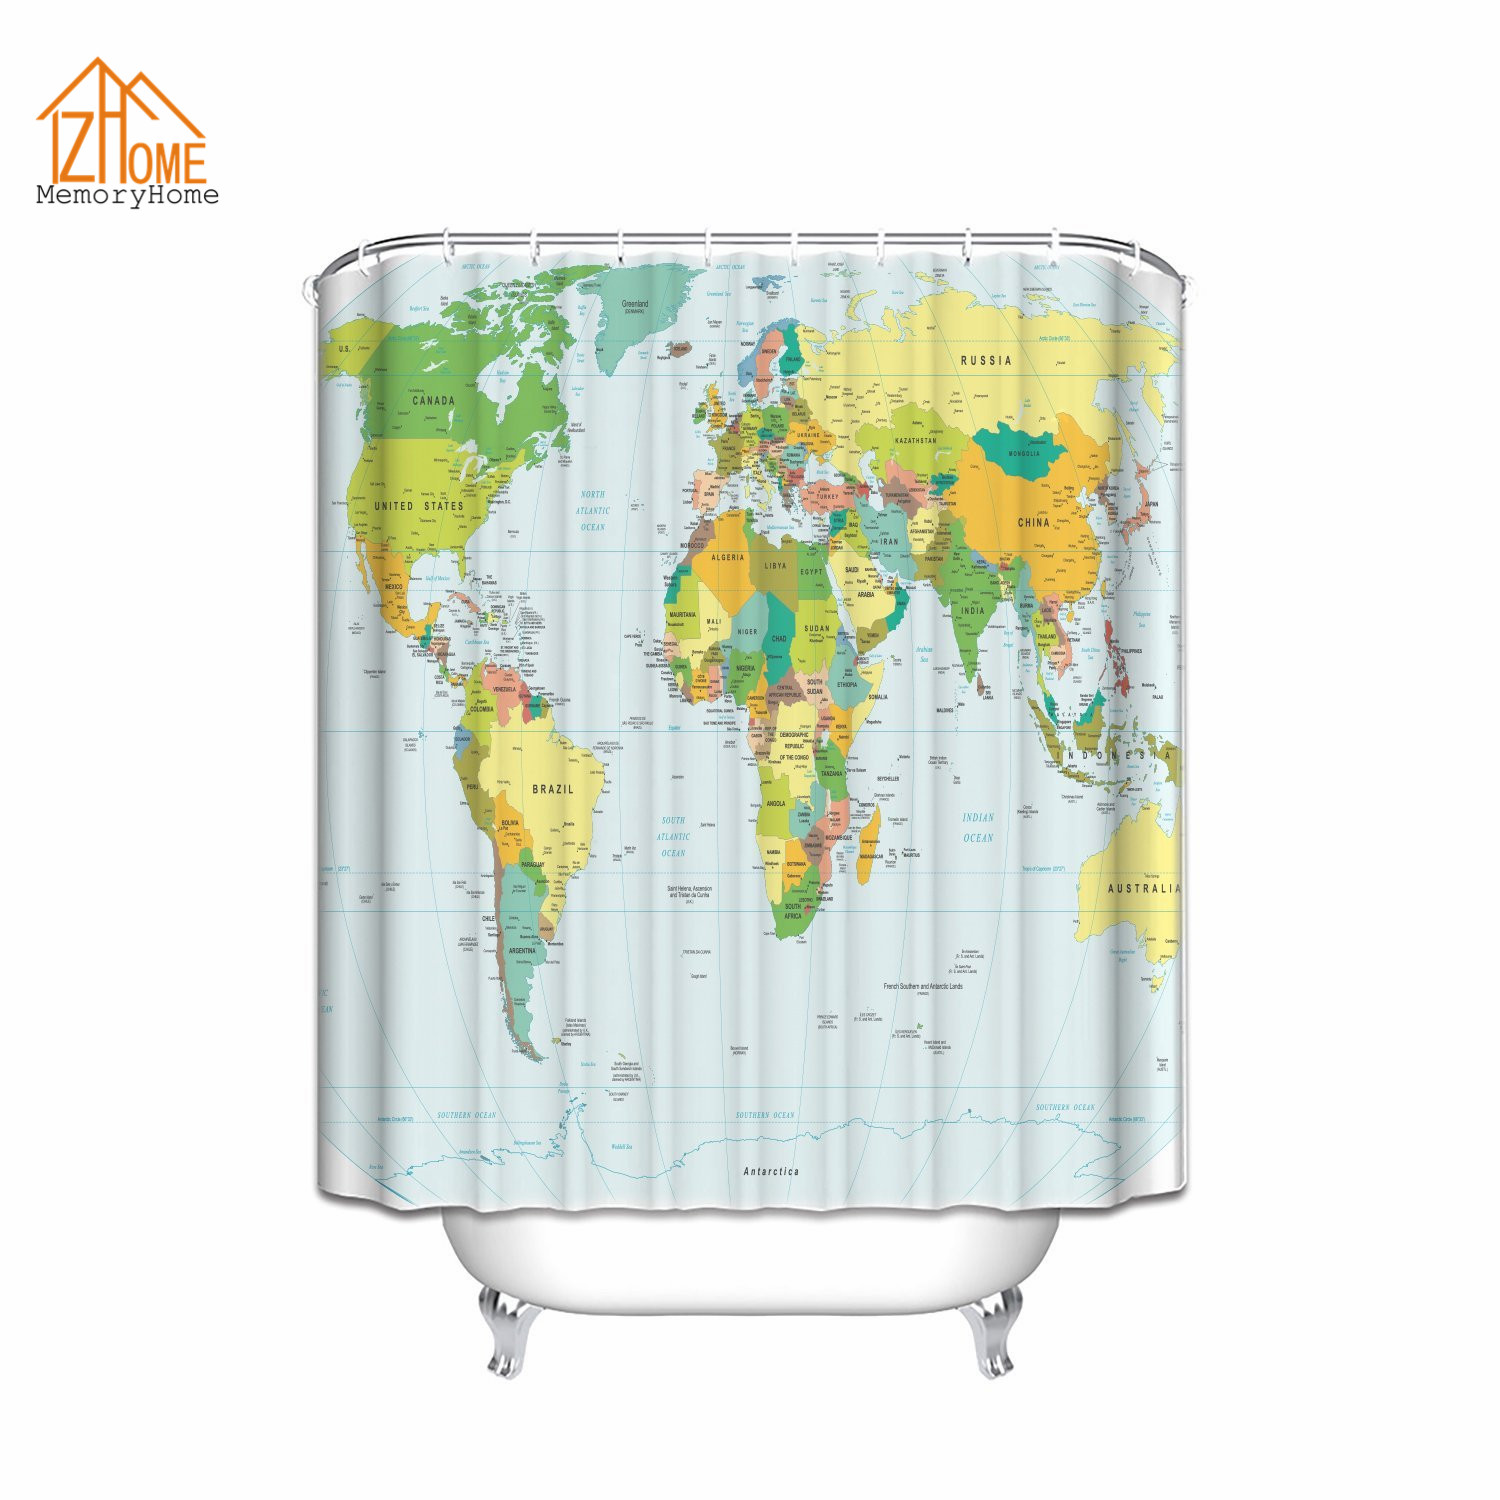 Memory home world map print educational geographical earth in my memory home world map print educational geographical earth in my bathroom ocean novelty home decor fabric shower curtain in shower curtains from home gumiabroncs Gallery